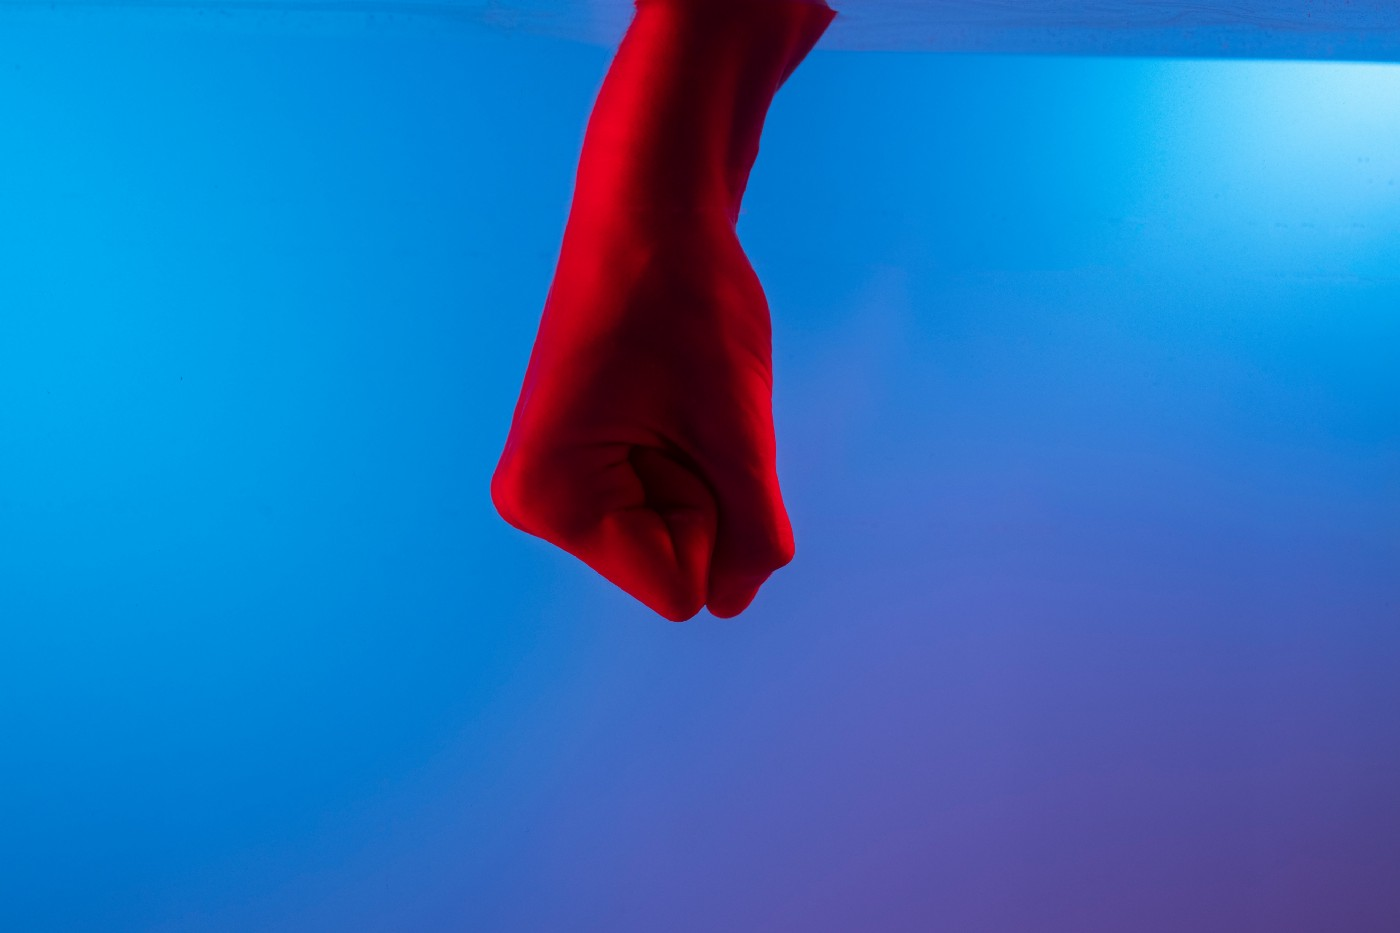 A fist bathed in red light in front of a blue background.